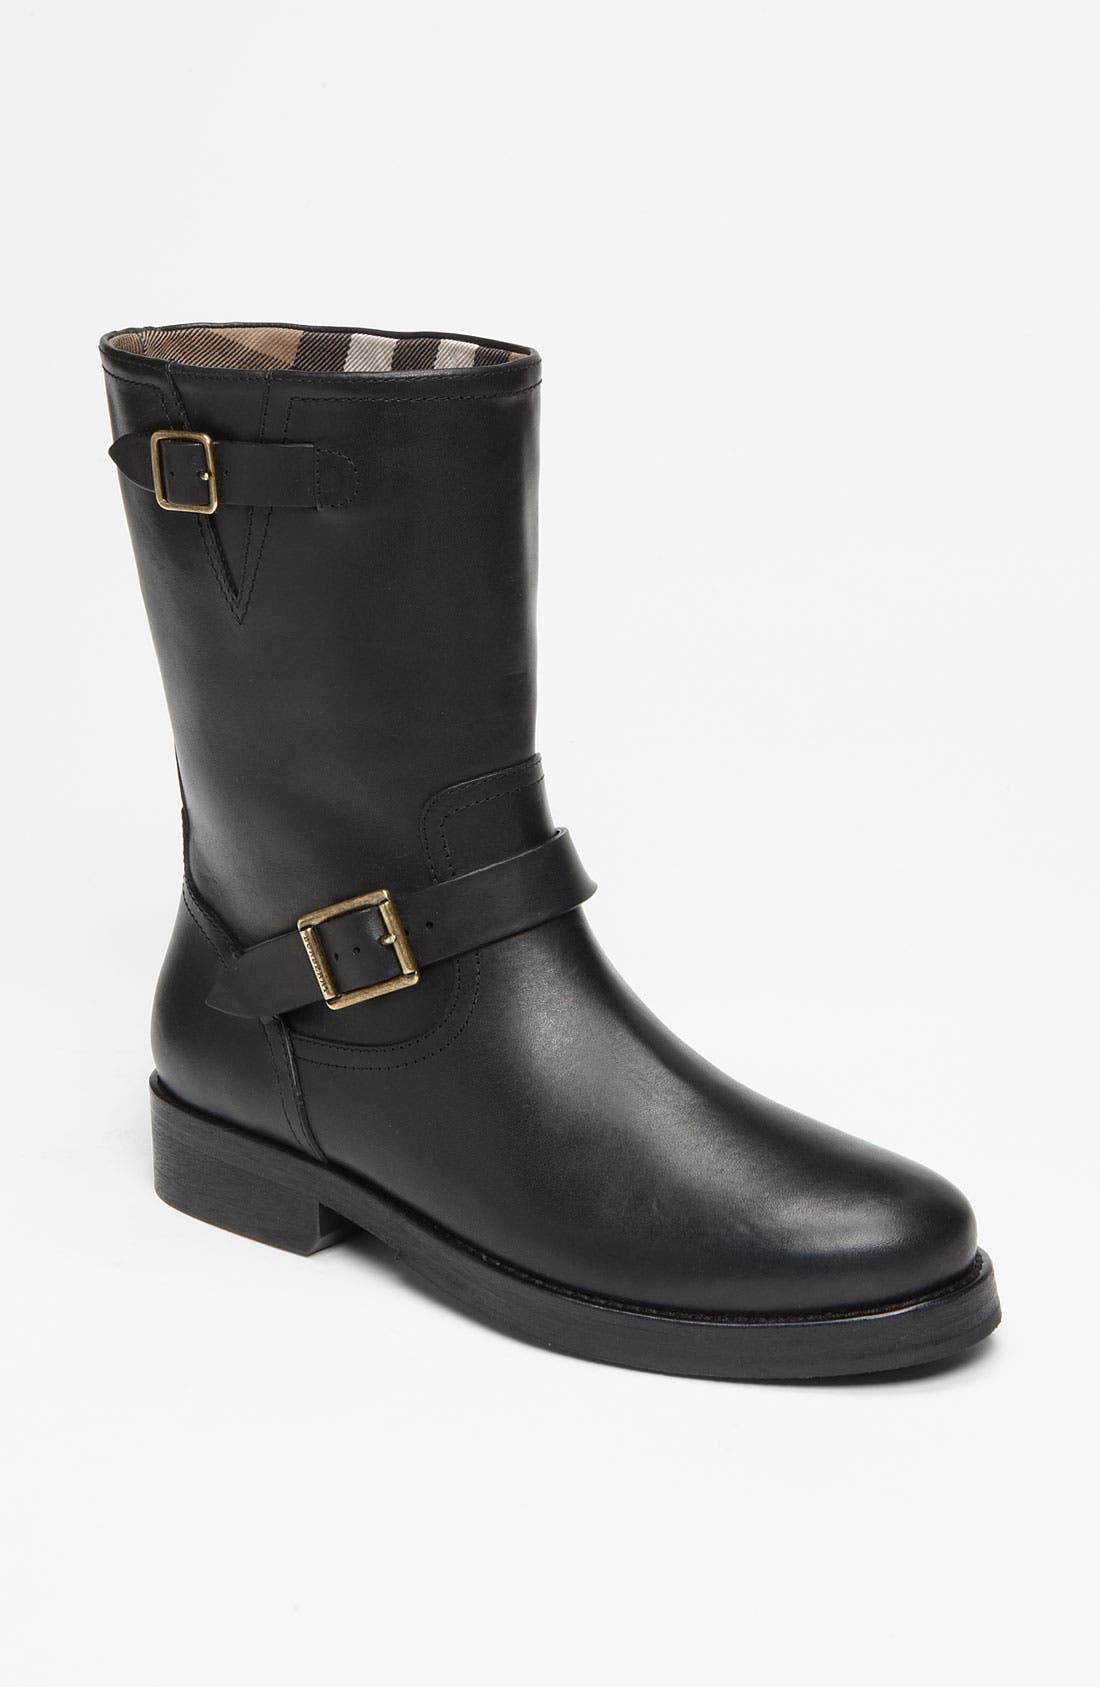 Alternate Image 1 Selected - Burberry 'Wingfield' Boot